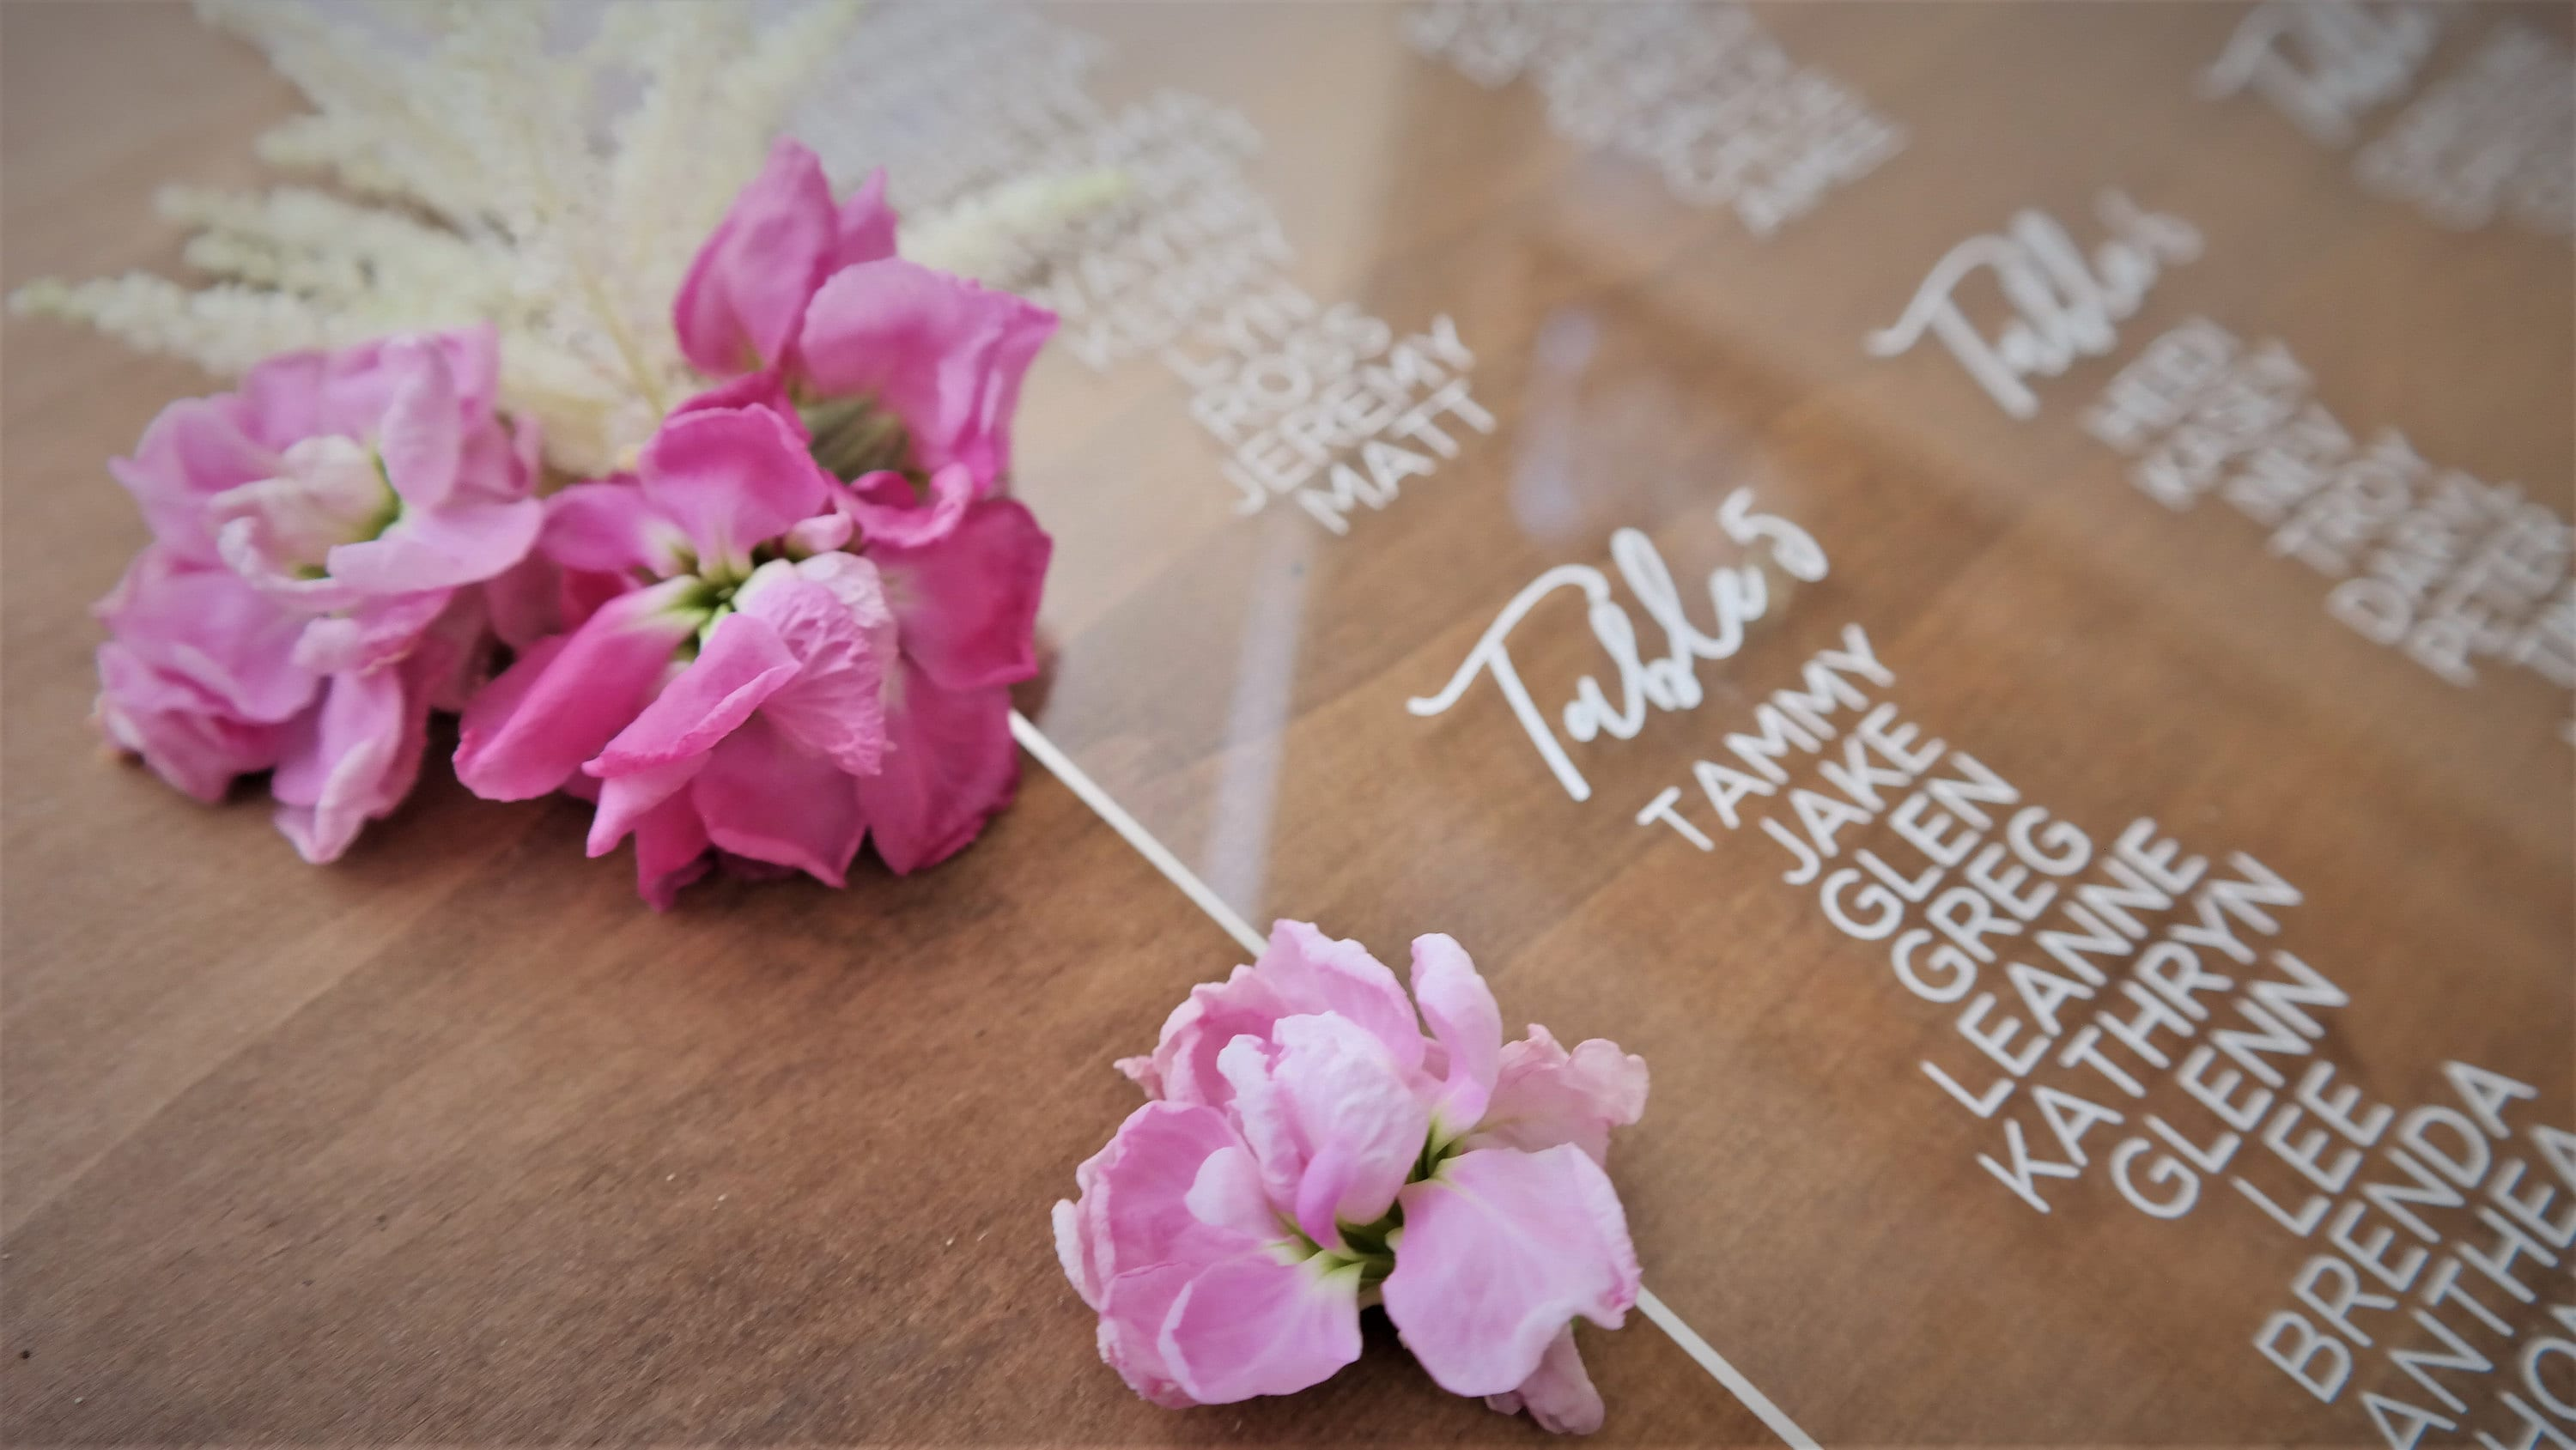 Acrylic Seating chart - welcome sign